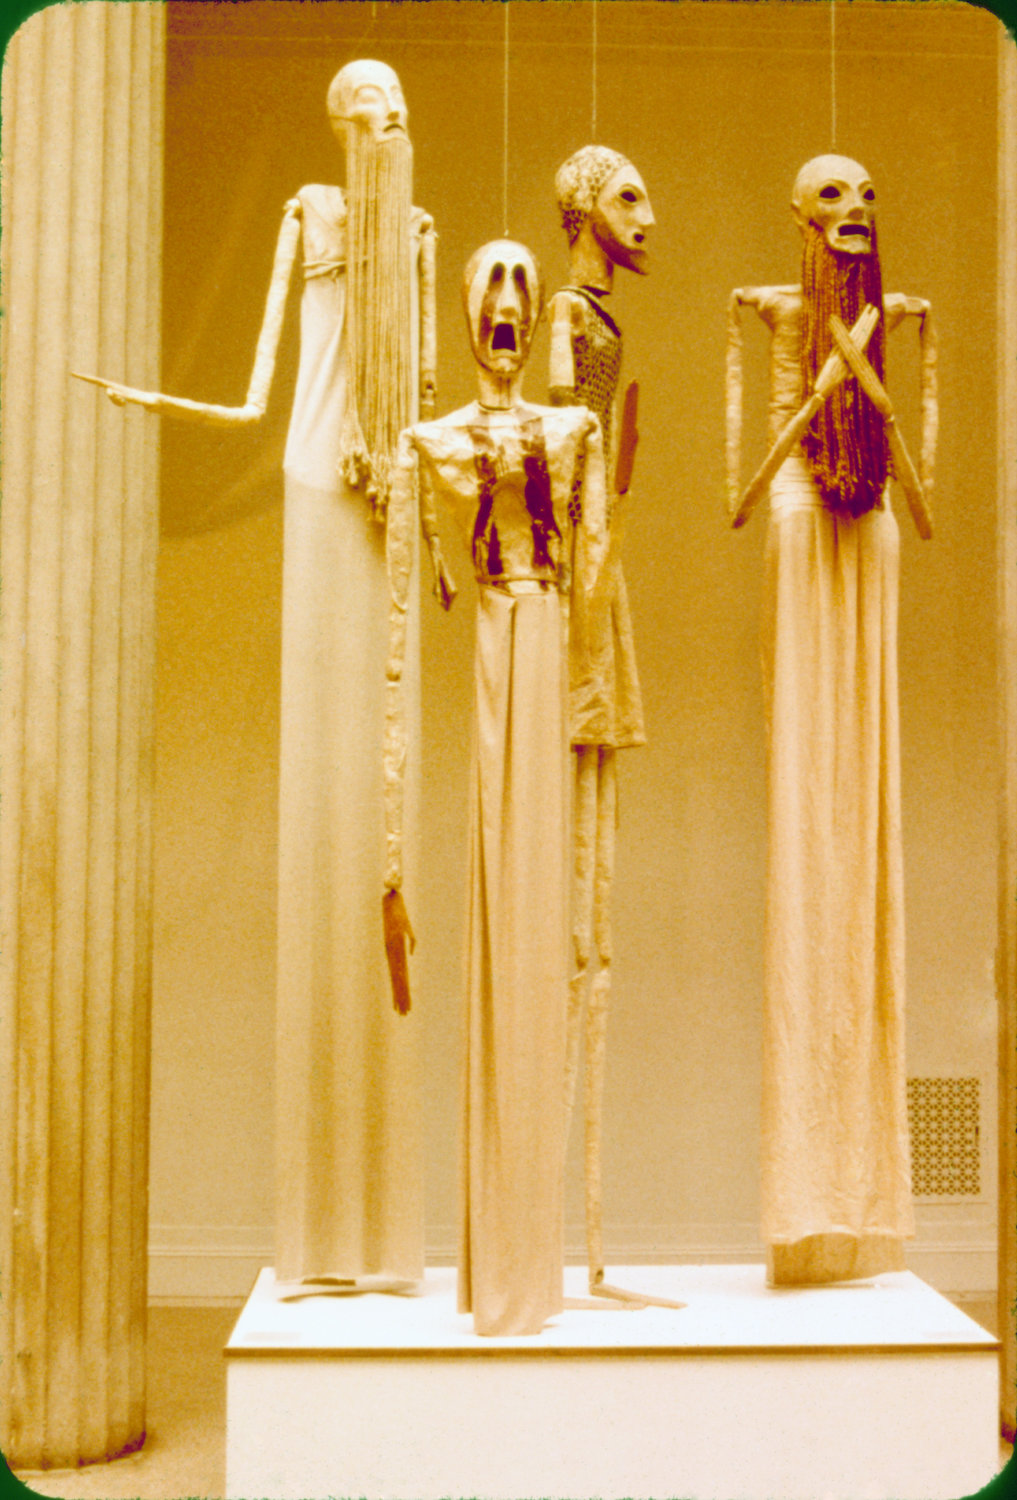 "Puppets for <em>Oedipus Rex</em> (1931), built and operated by American puppeteer Remo Bufano (1894-1948), based on the ""Opera-oratorio after Sophocles"" by Igor Stravinsky, design: Robert Edmund Jones. Puppets, height: 3.0 m. First presented in Philadelphia with the Philadelphia Orchestra under Leopold Stokowski and later at the Metropolitan Opera House, New York. Collection: Detroit Institute of Arts. Photo: Alan Cook"